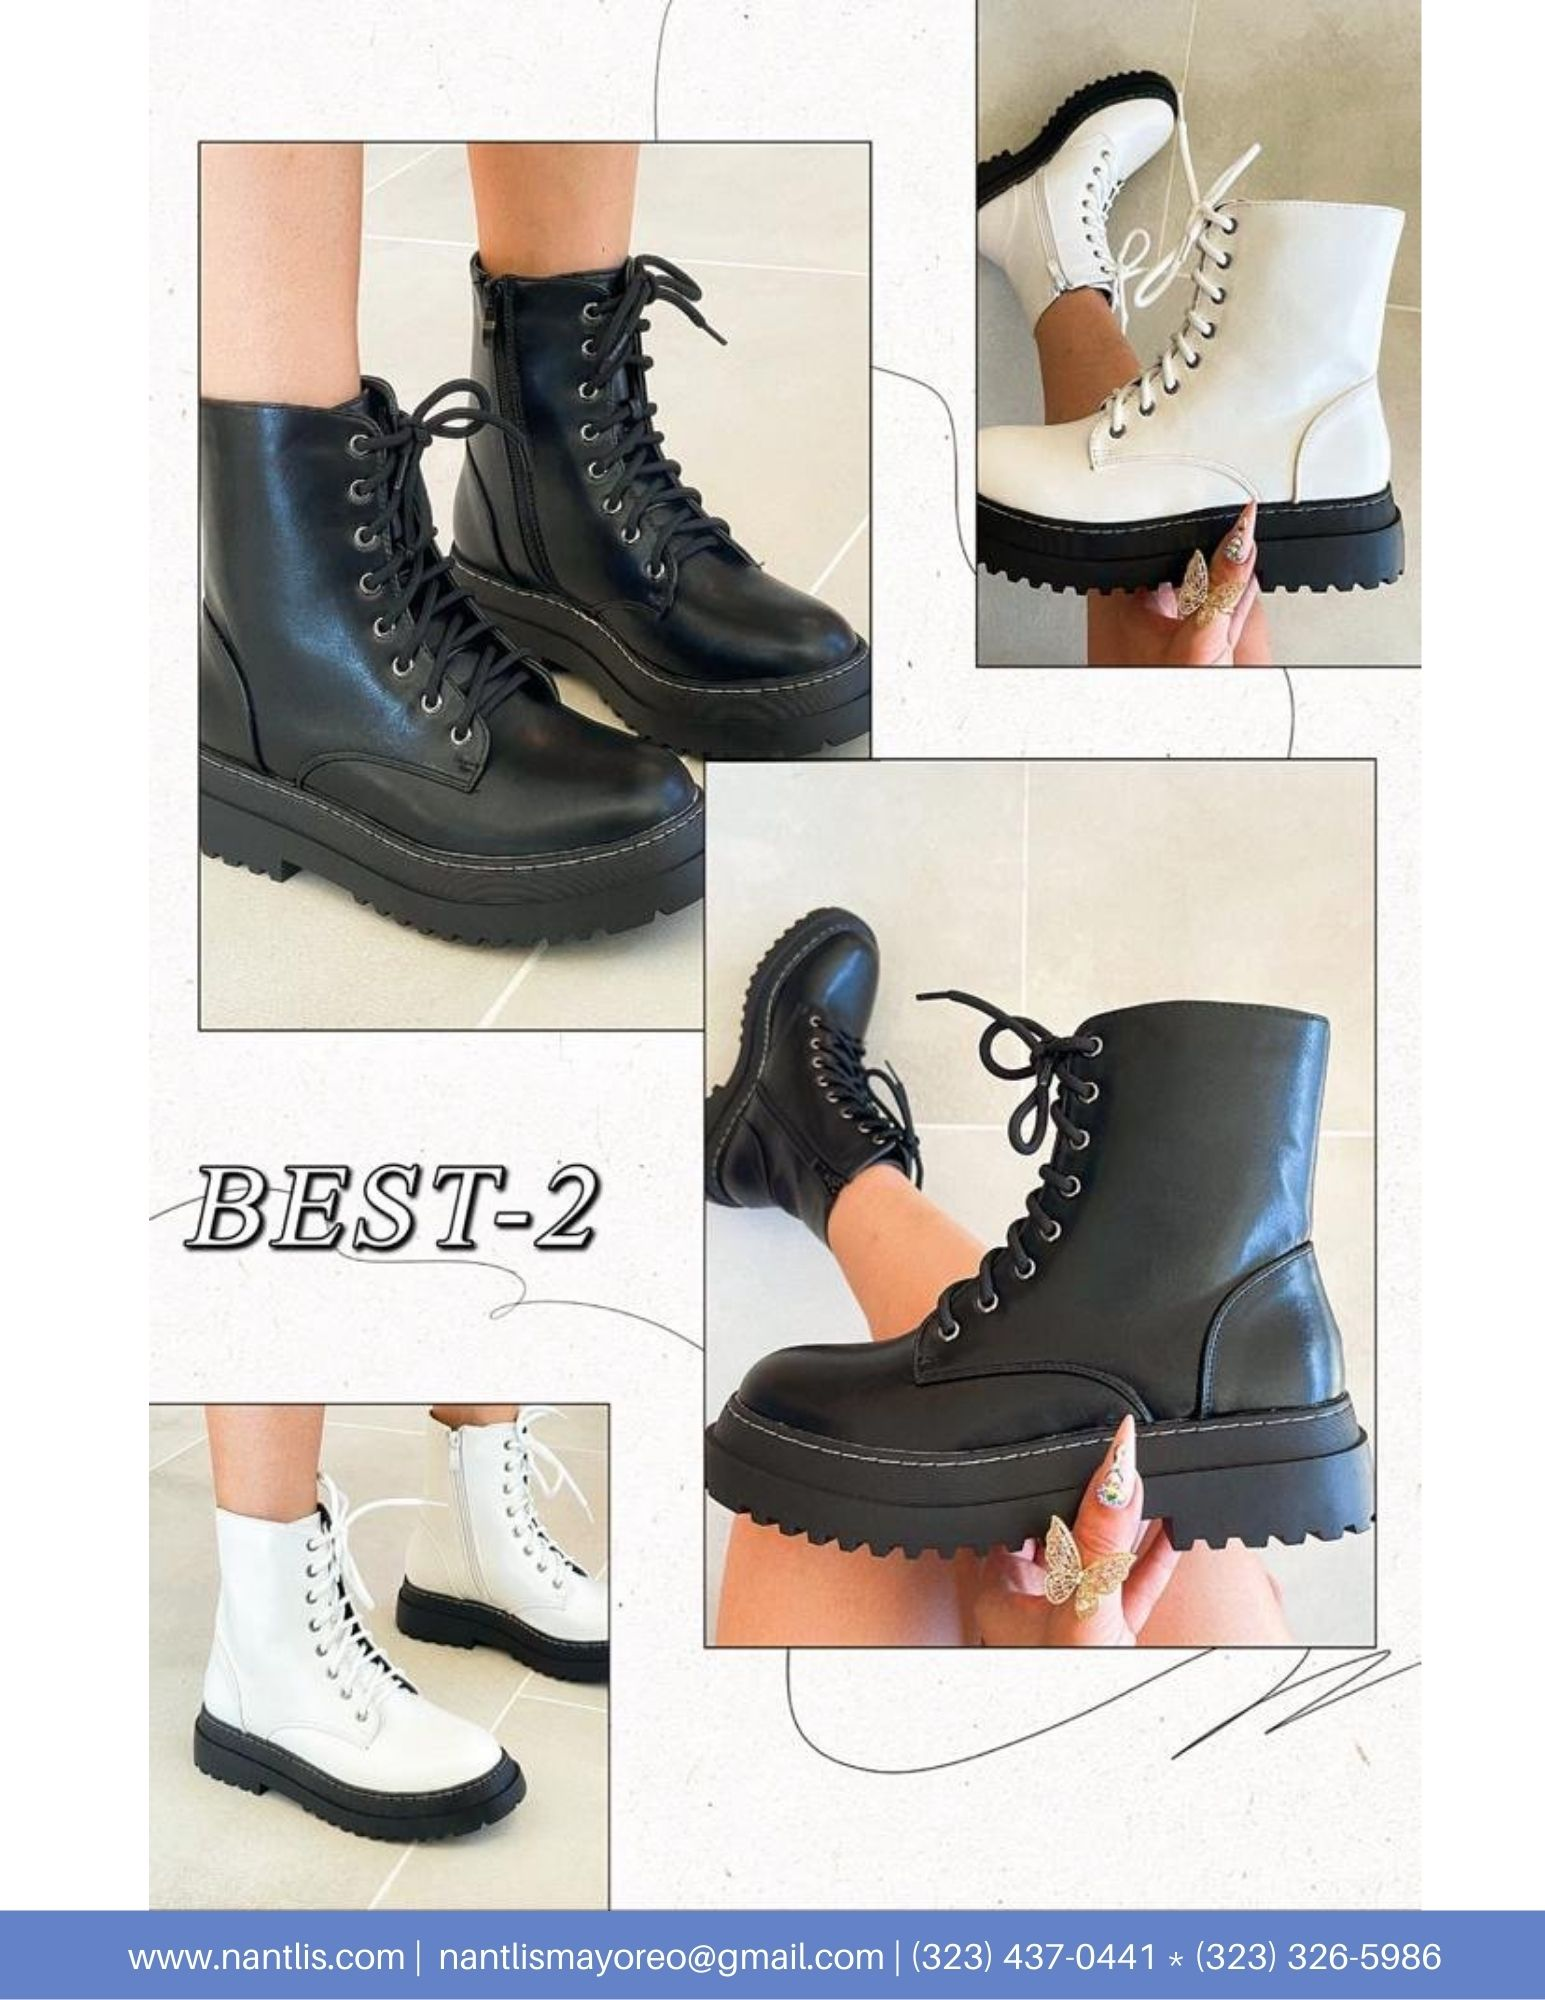 Nantlis Vol AN22 Botas Mujer mayoreo Catalogo Wholesale boots for women page 14